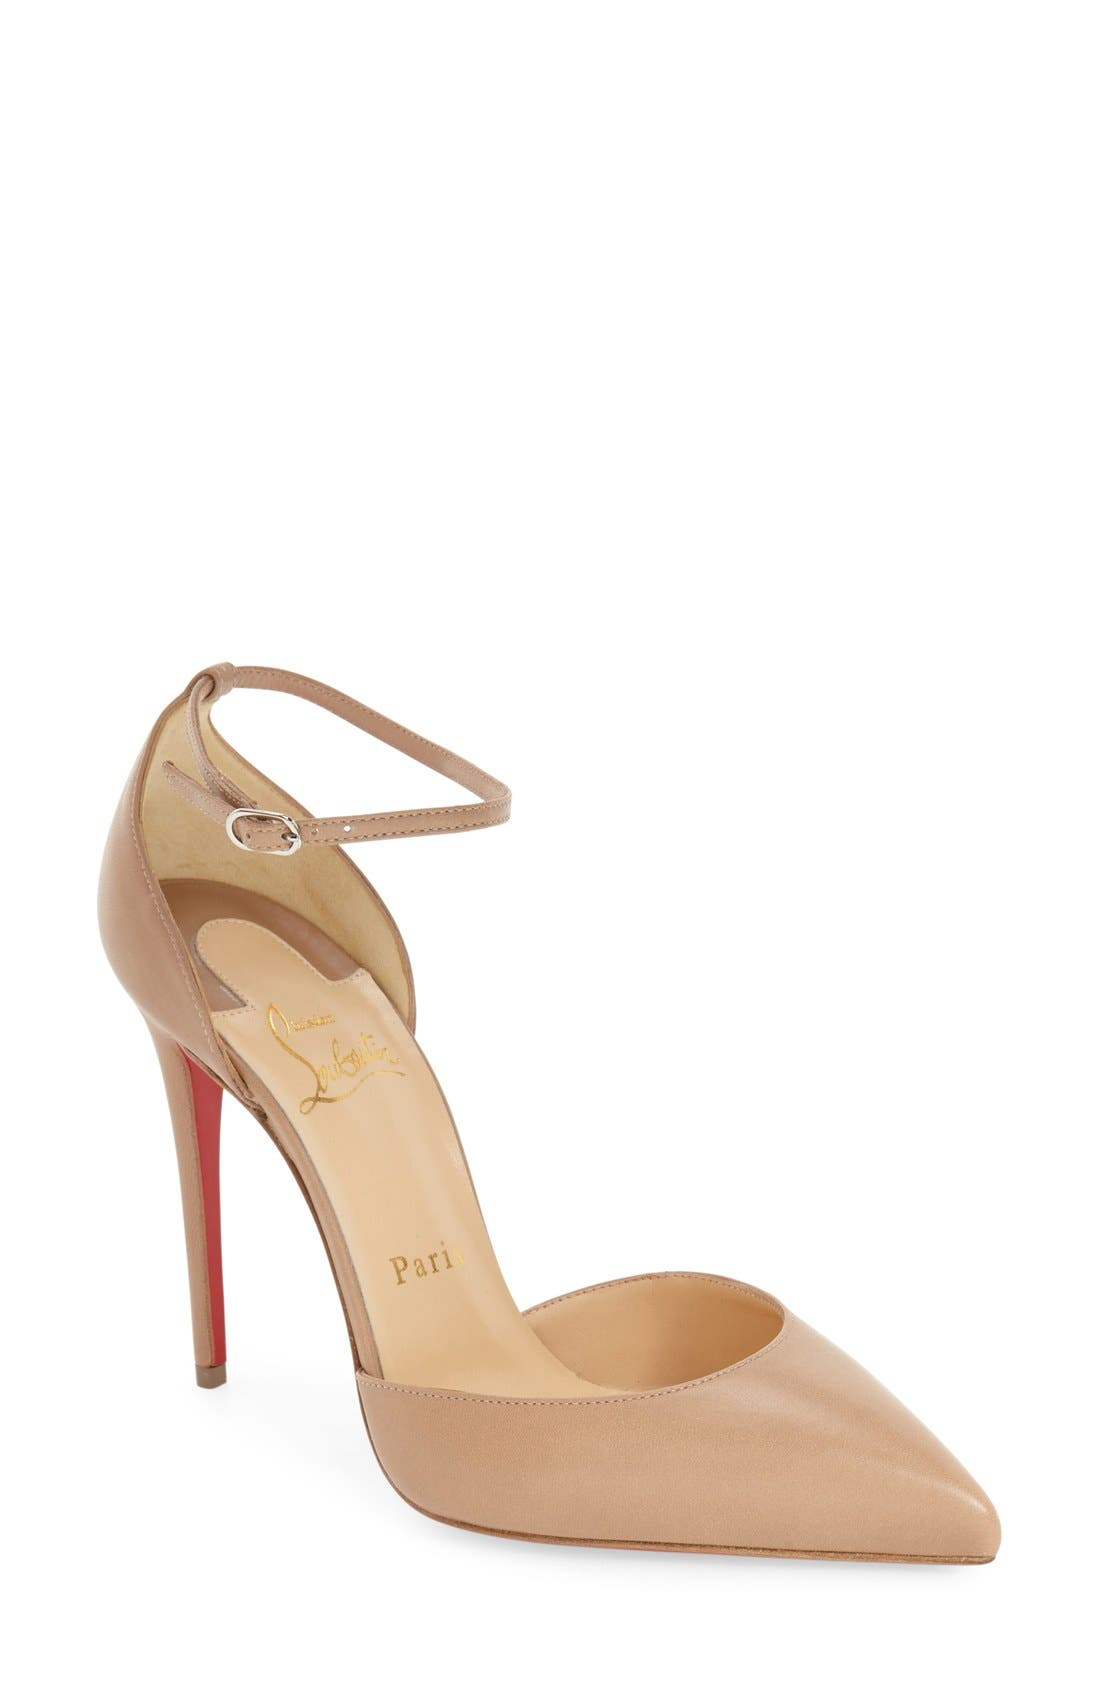 Uptown Ankle Strap Pointy Toe Pump,                             Main thumbnail 1, color,                             250